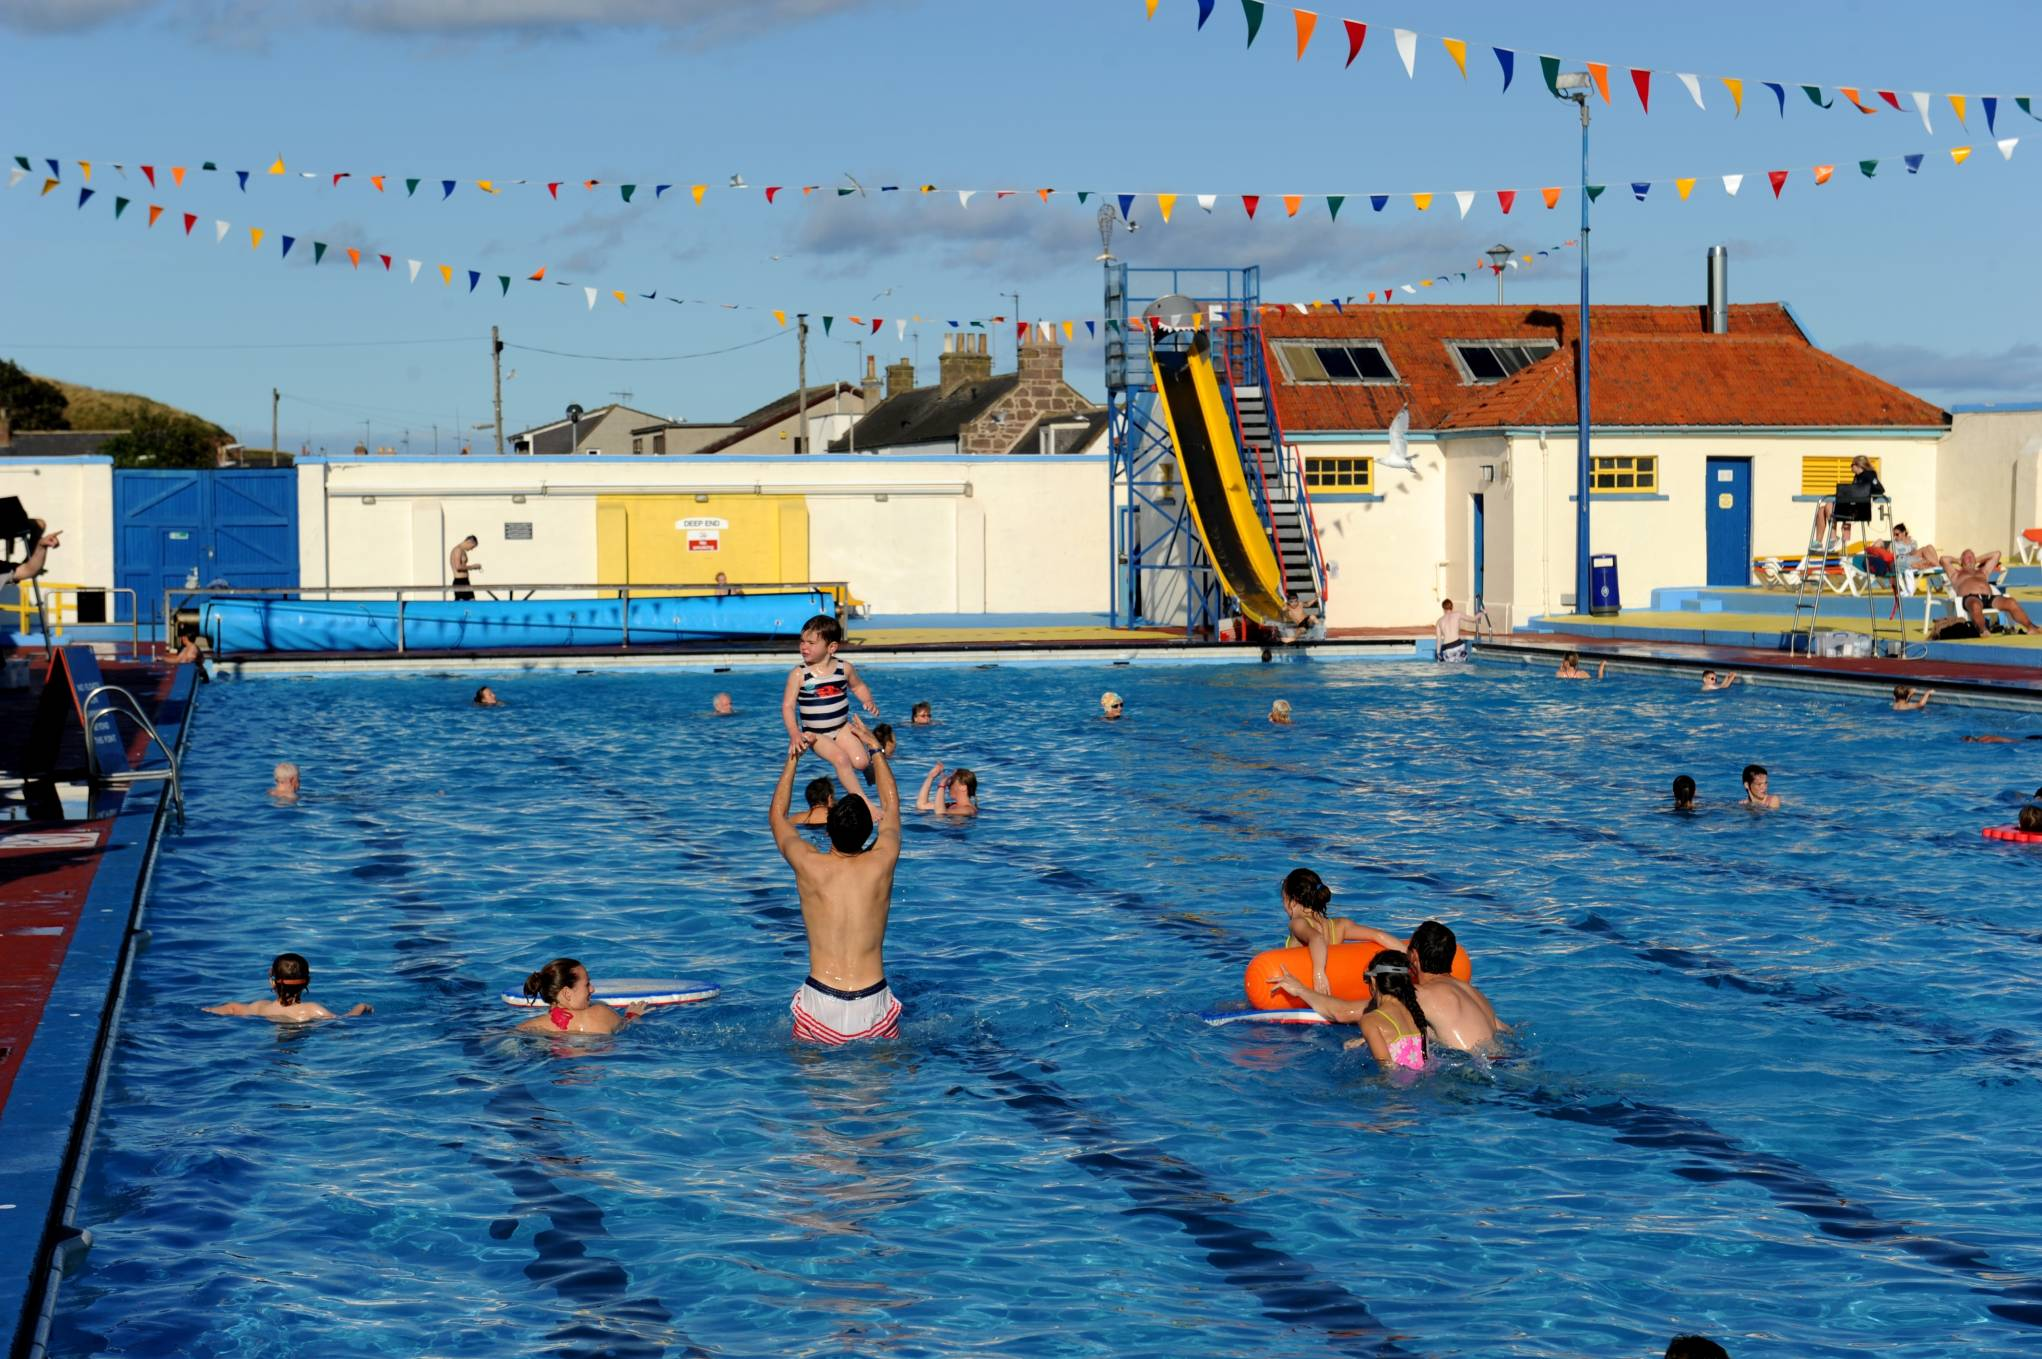 Stonehaven Open-Air Swimming Pool Aberdeen and the Northeast, Volunteers dive in for Stonehaven outdoor pool revamp